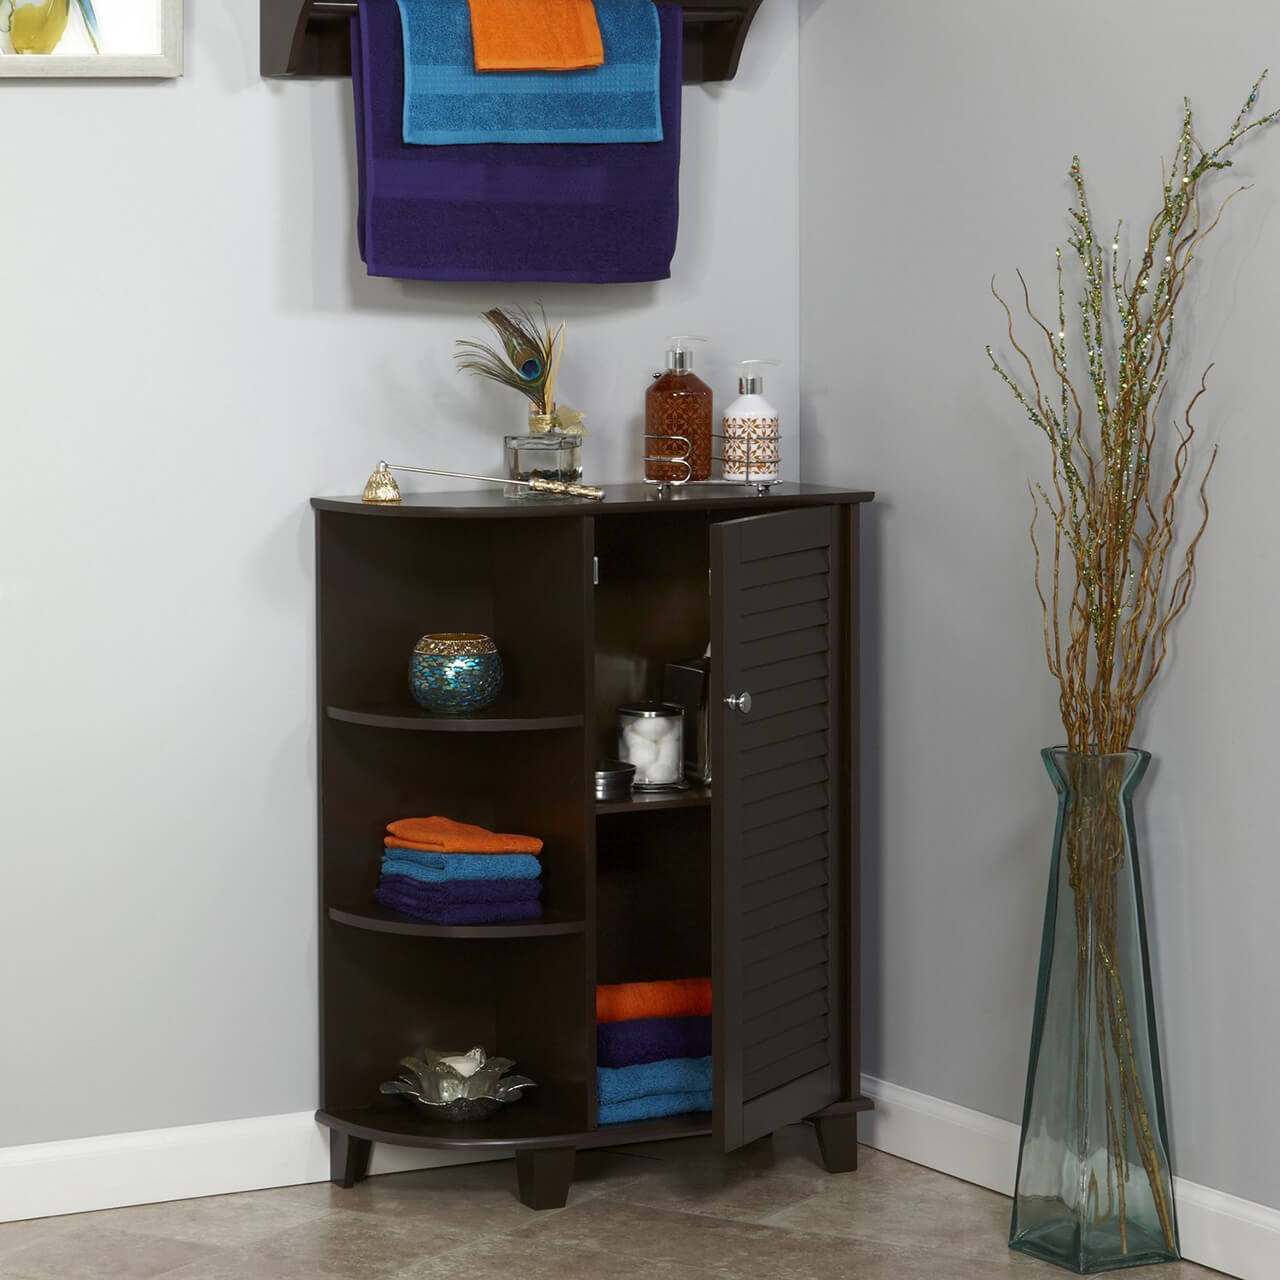 RiverRidge Ellsworth Floor Cabinet with Side Shelves